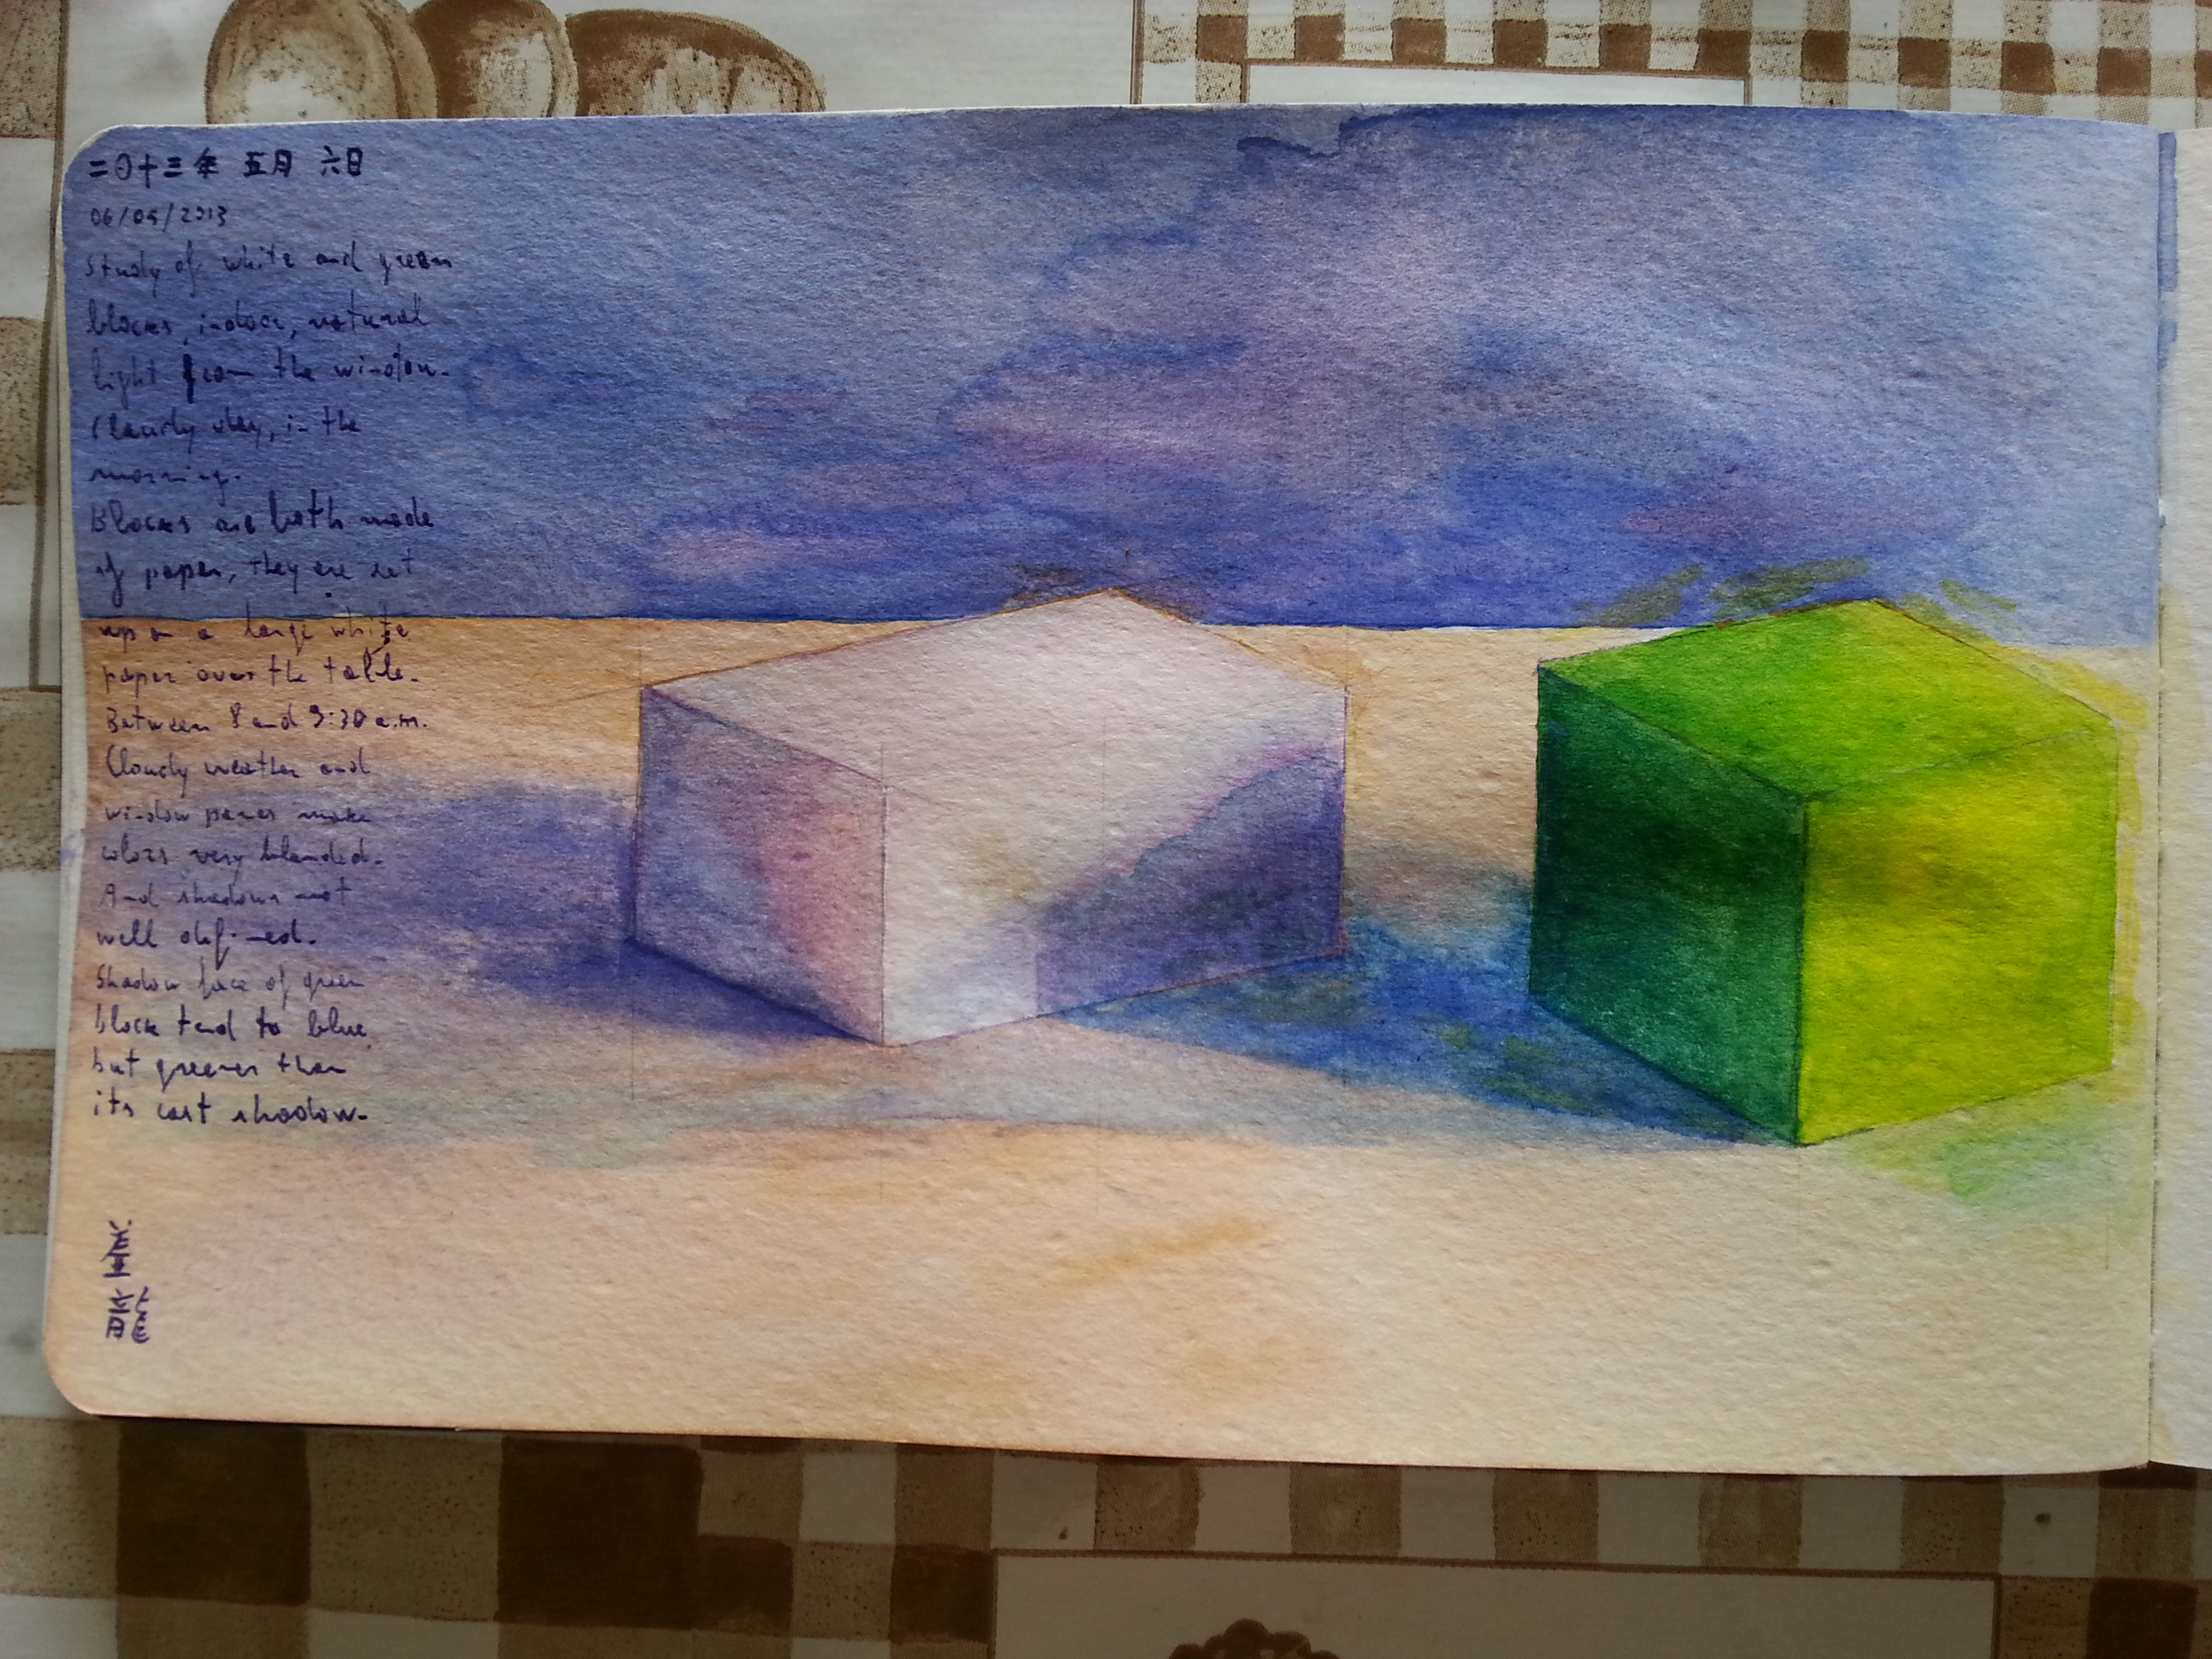 Study of white and green blocks, indoor, natural light from the window.